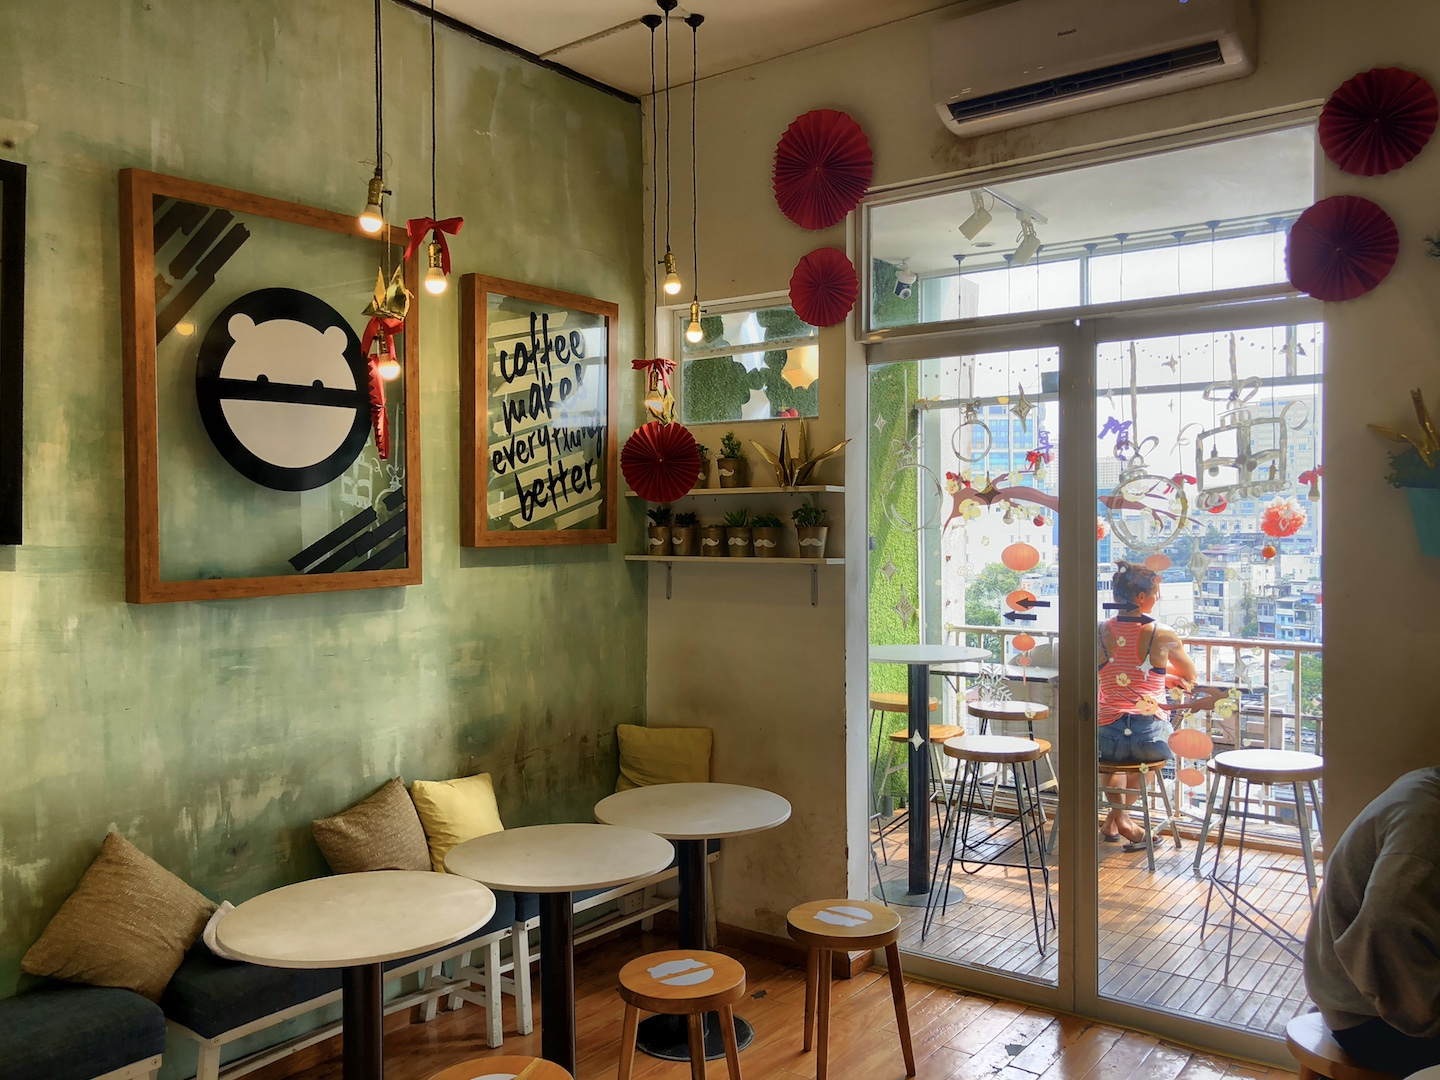 Boo Café, The Café Apartments, Ho Chi Minh, Vietnam